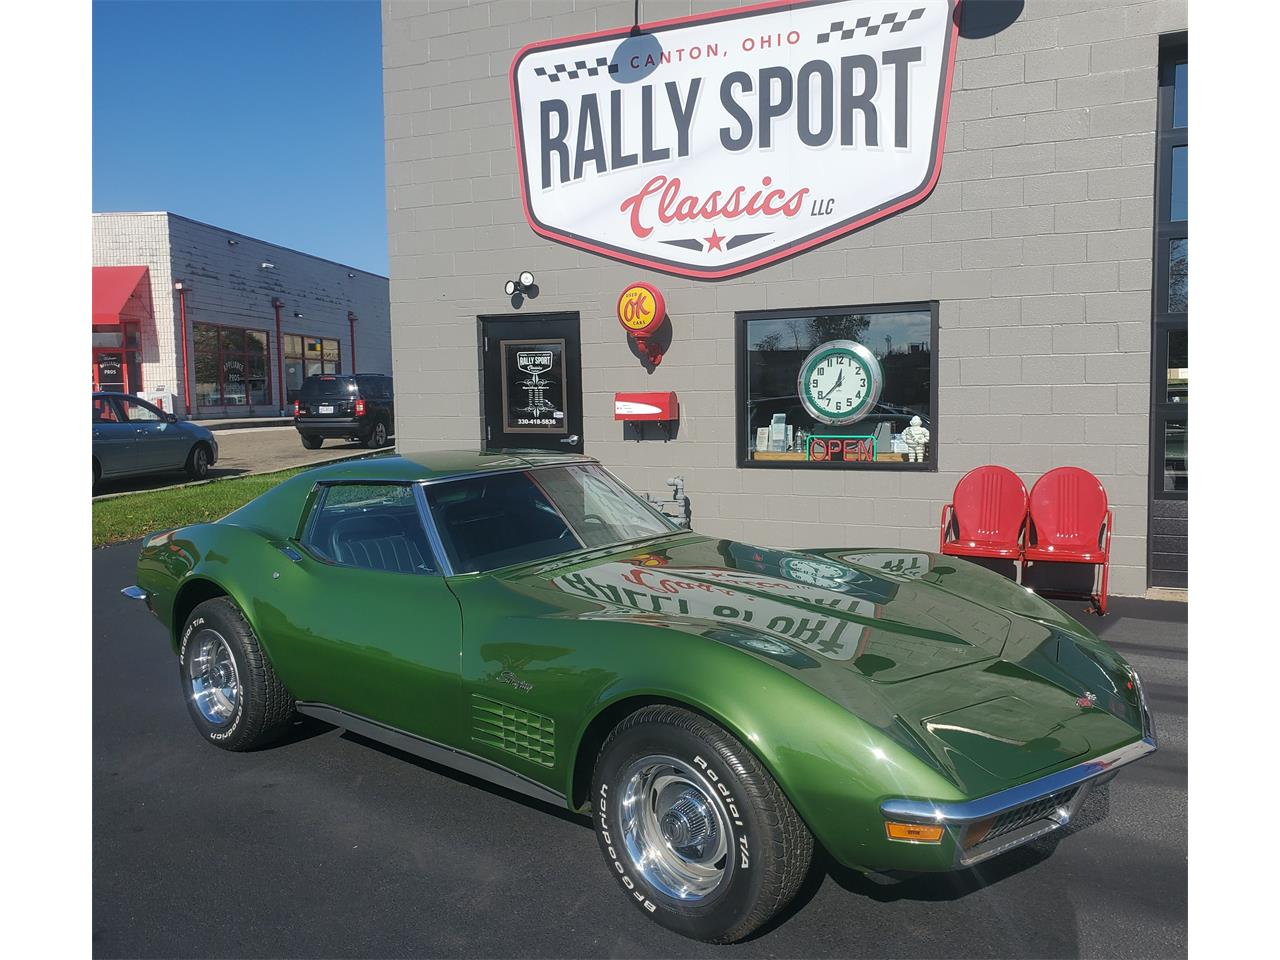 1972 Chevrolet Corvette (CC-1419759) for sale in Canton, Ohio